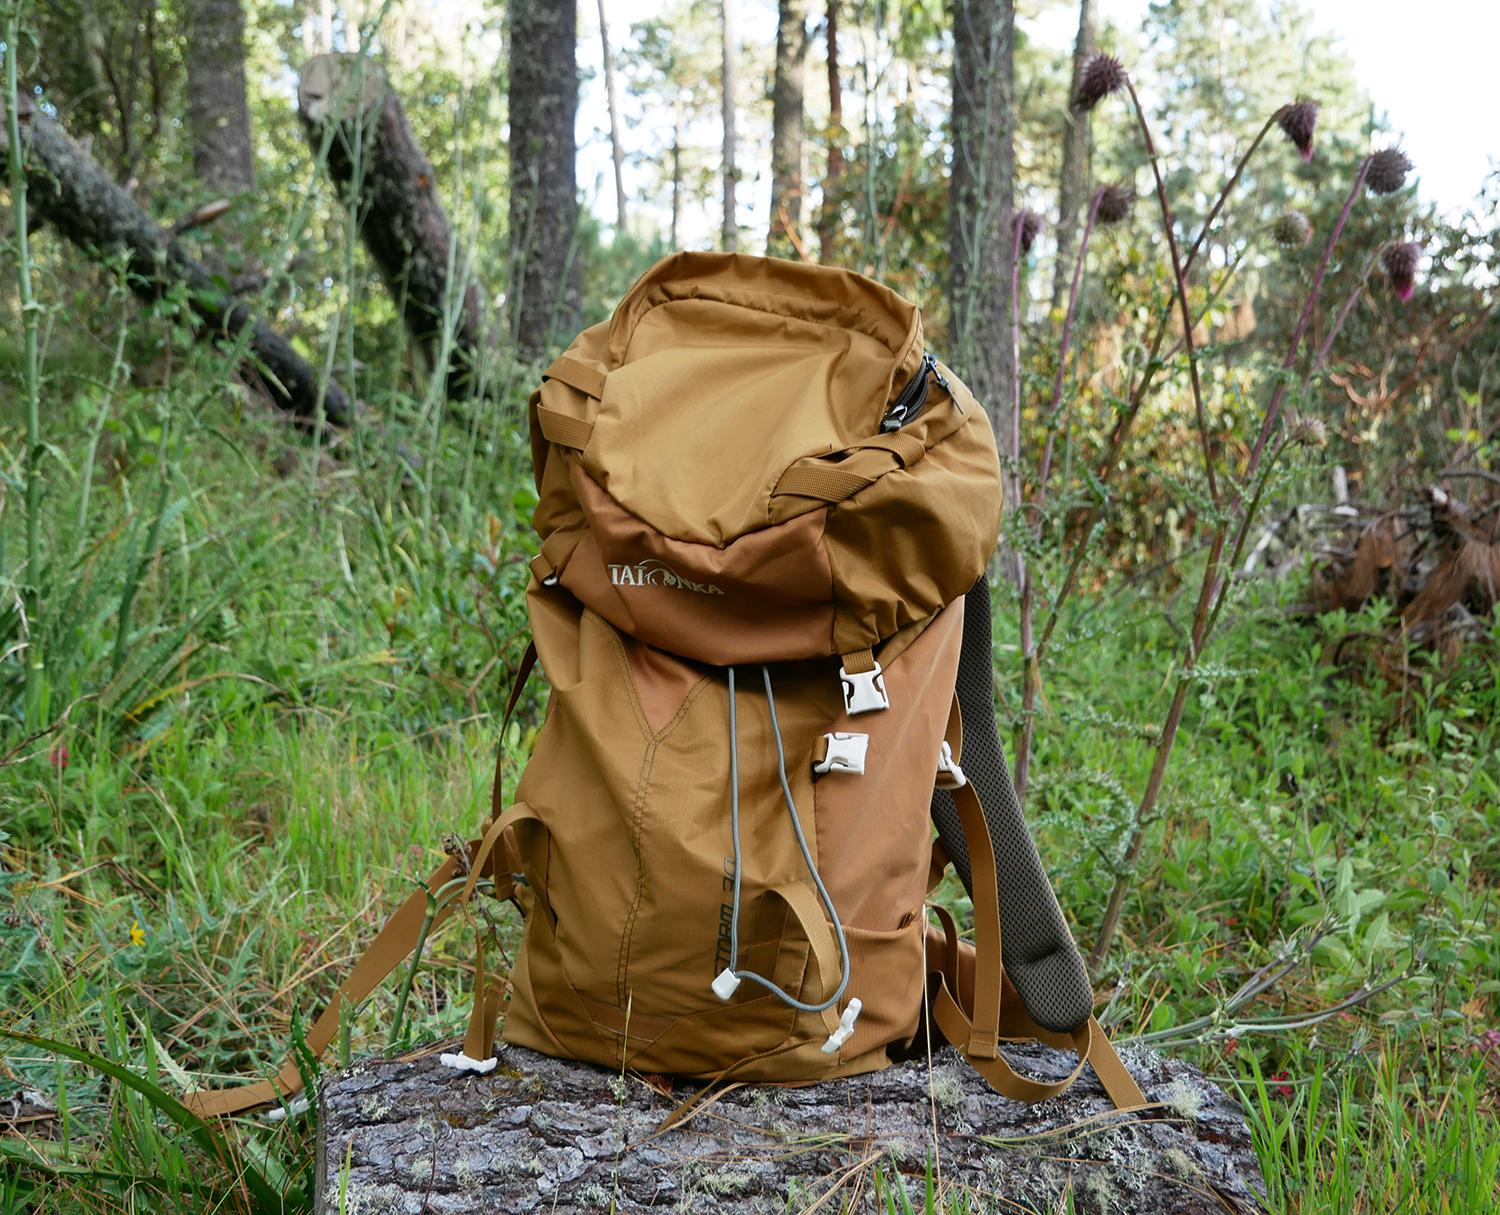 Review Tatonka Storm backpack